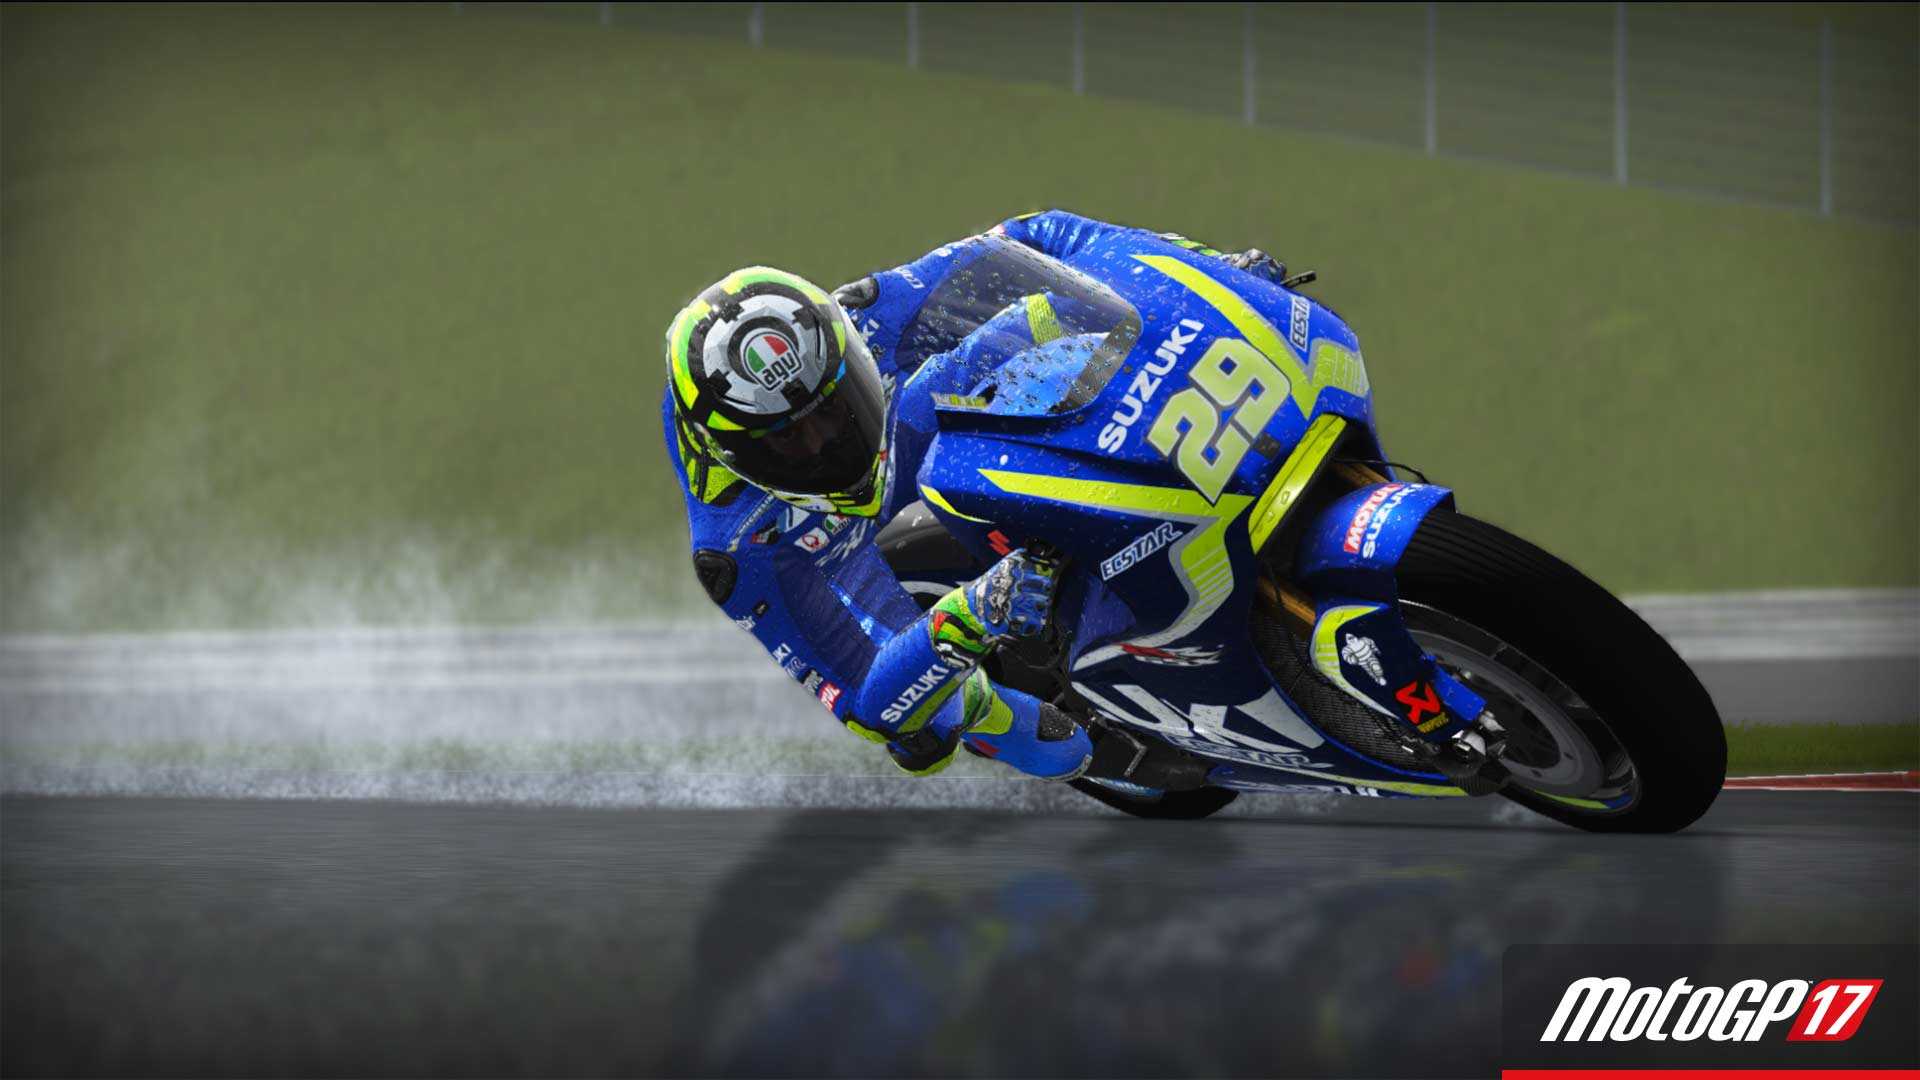 Moto GP 17 Is Out Now - Inside Sim Racing